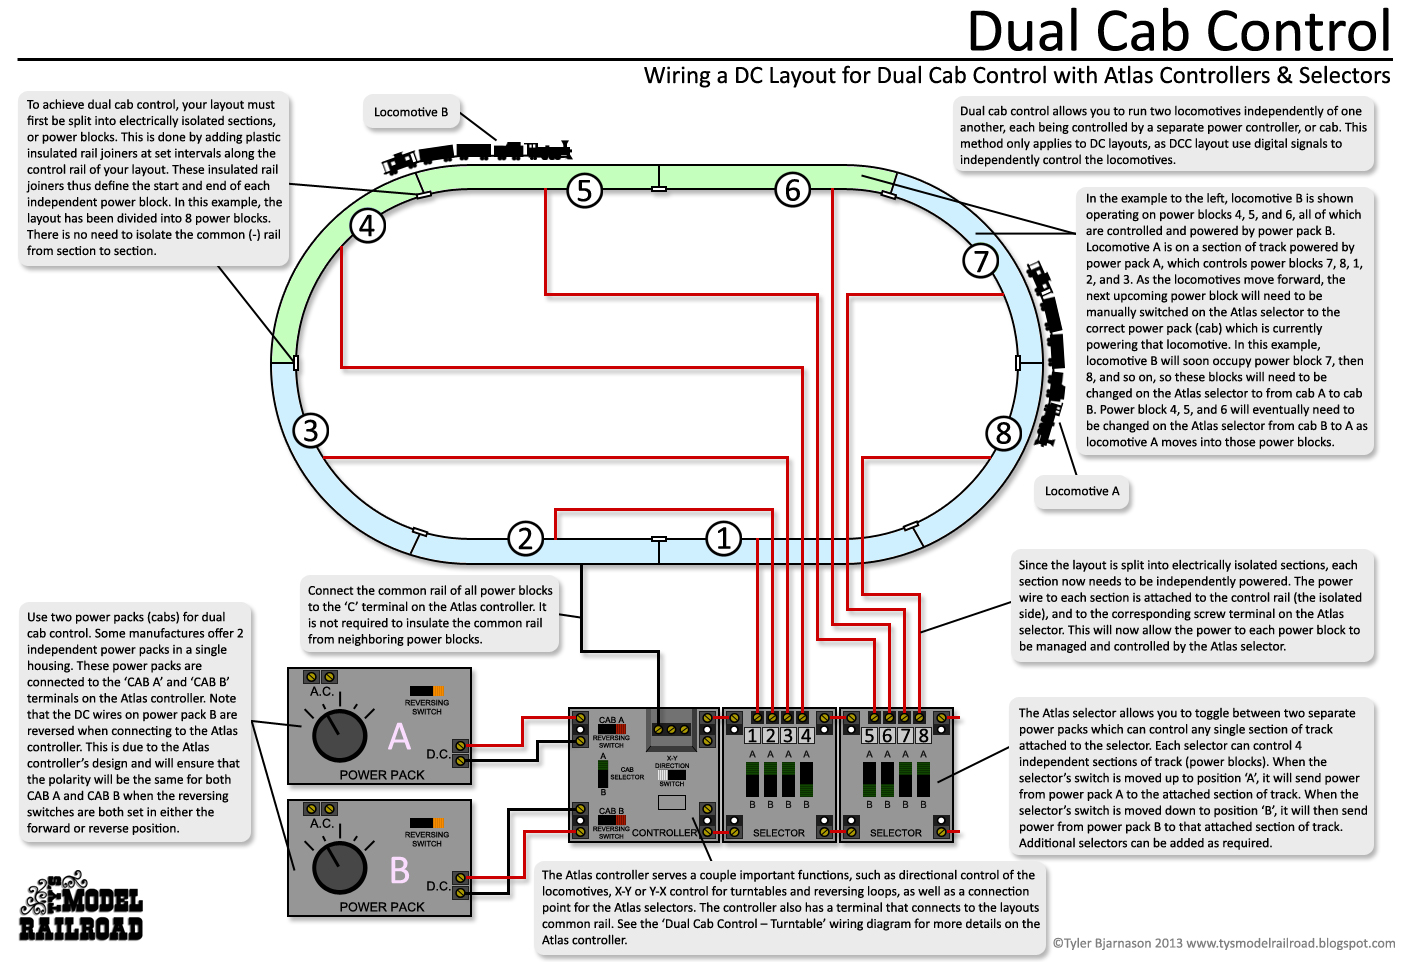 model railway signal wiring diagram er for library management system ty 39s railroad diagrams